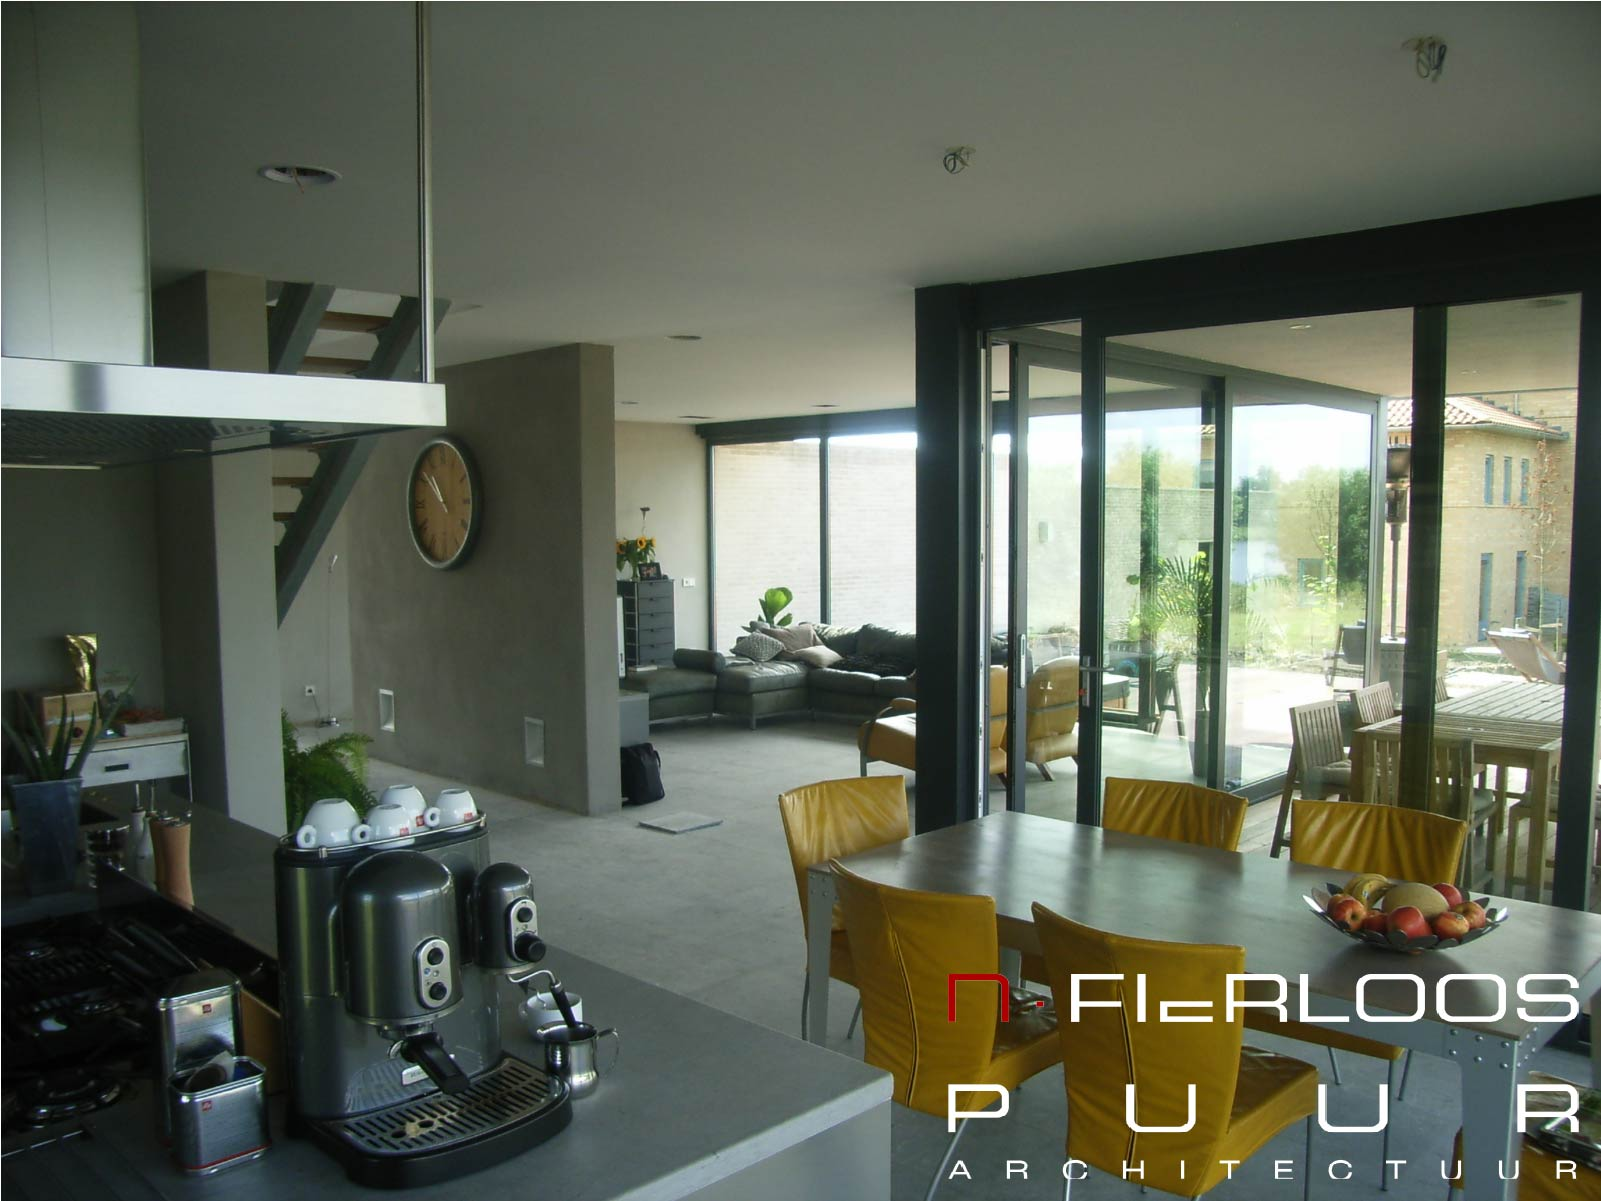 Nico fierloos// Puur architectuur//